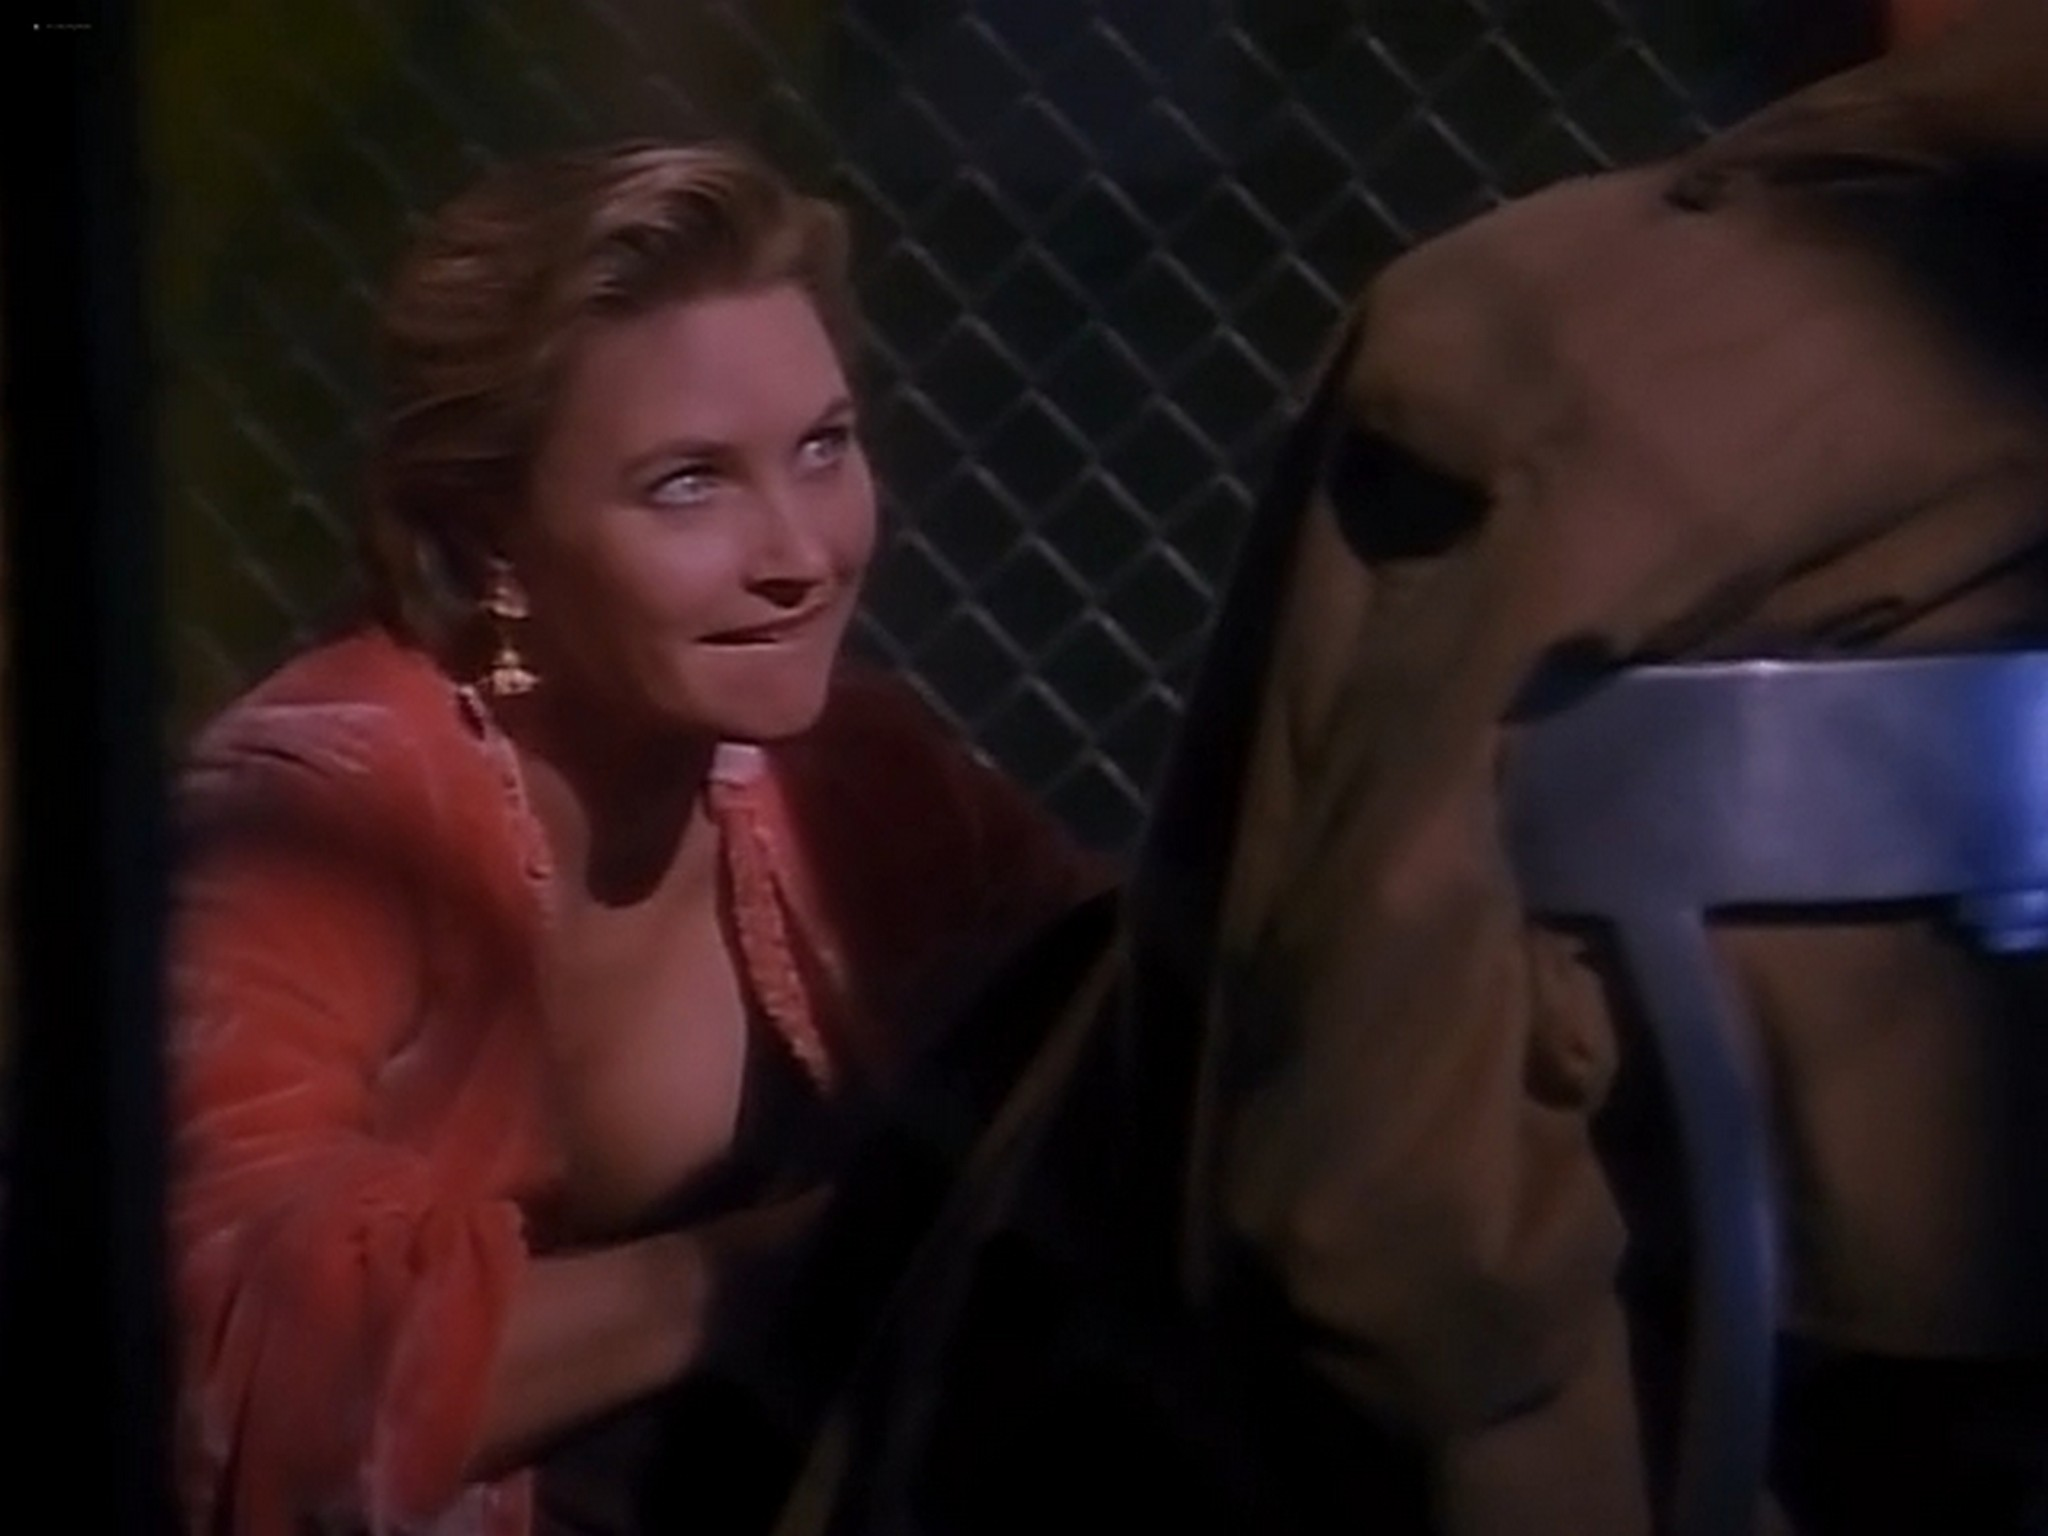 Denise Crosby nude and sex Red Shoe Diaries You Have the Right to Remain Silent 1992 DVDRip 6